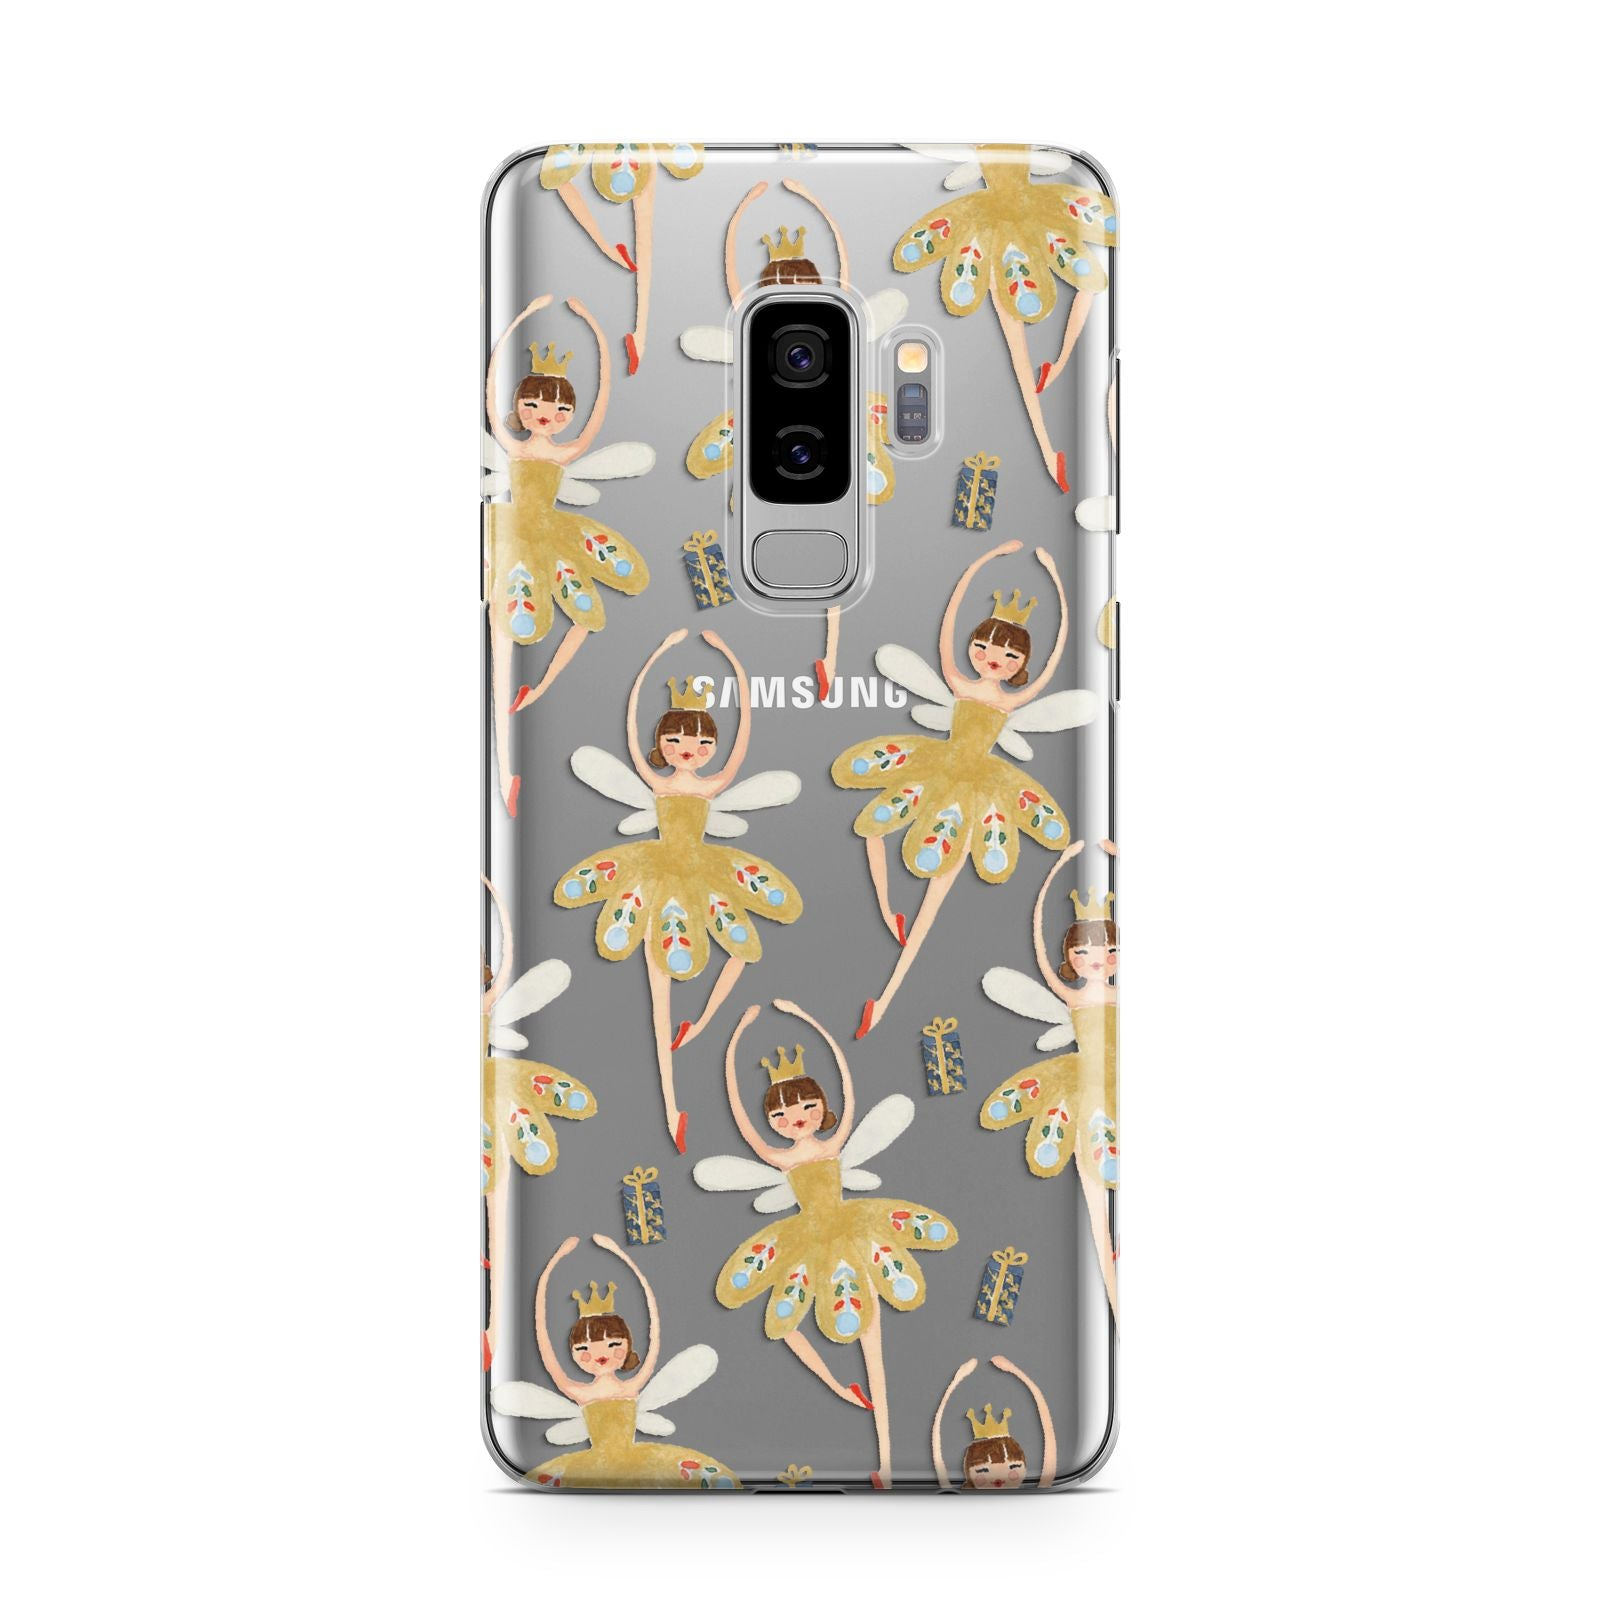 Dancing ballerina princess Samsung Galaxy S9 Plus Case on Silver phone